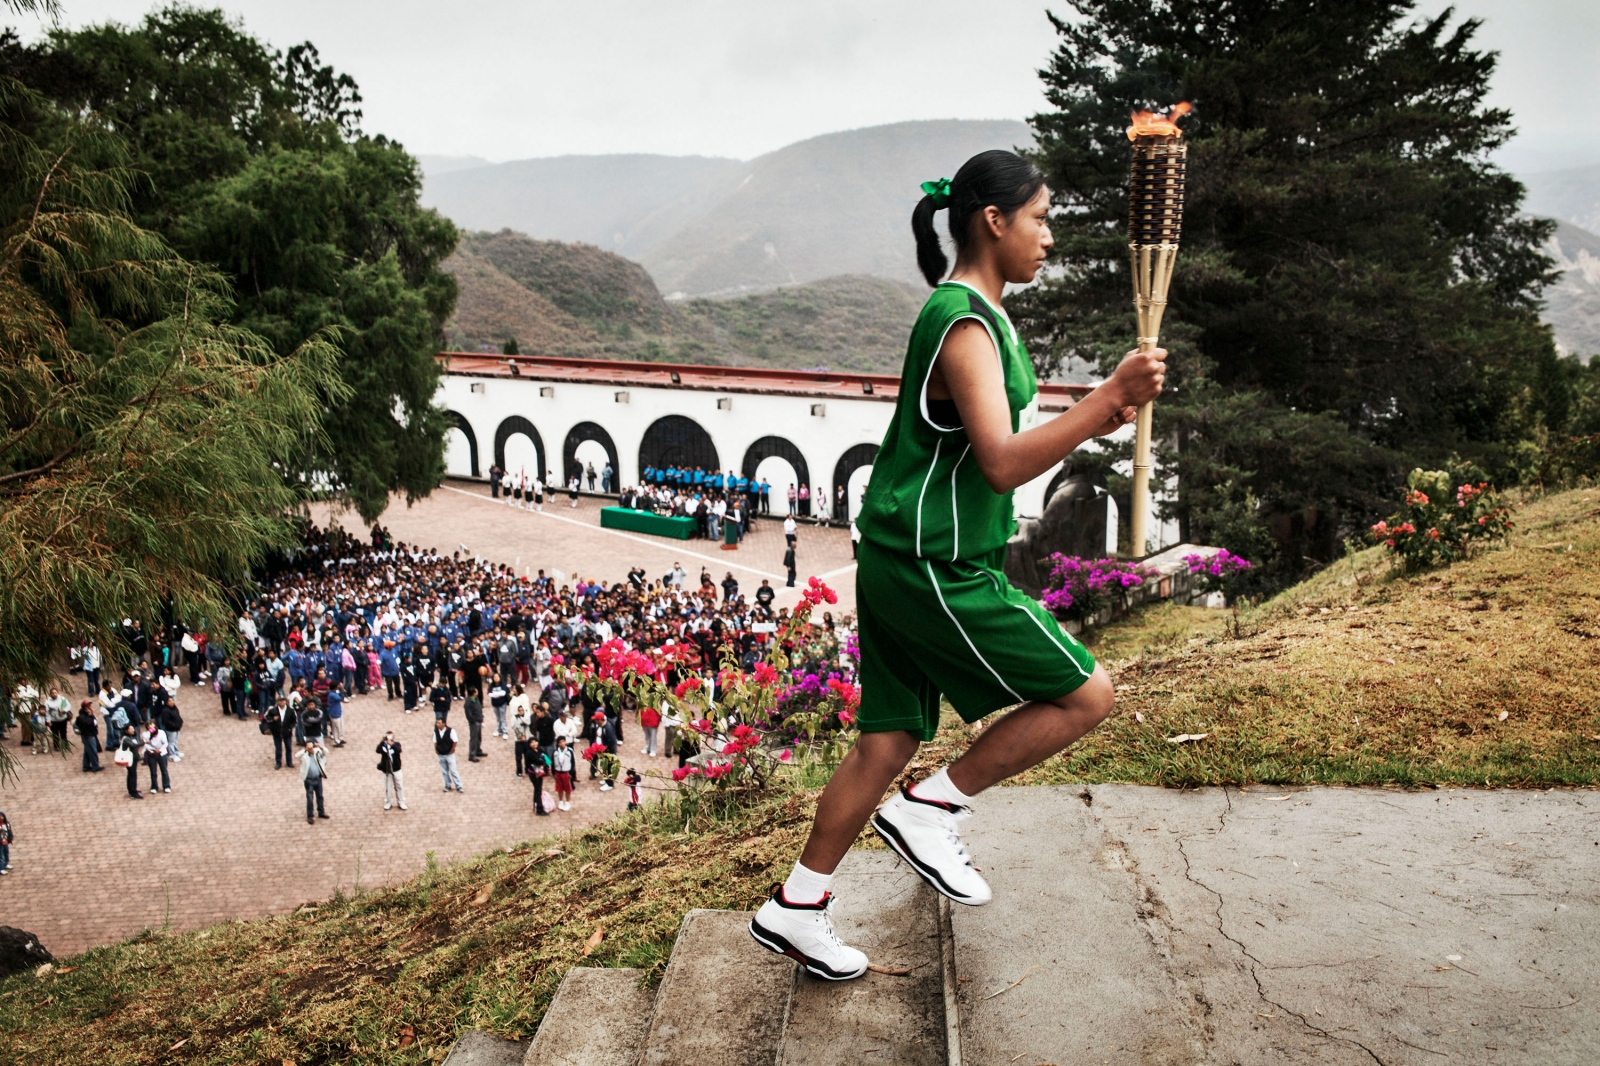 GUELATAO DE JUÁREZ, MARCH 10, 2012. Sandra Nayeli Pérez runs with the torch at the opening ceremony of the Copa Benito Juárez 2012.